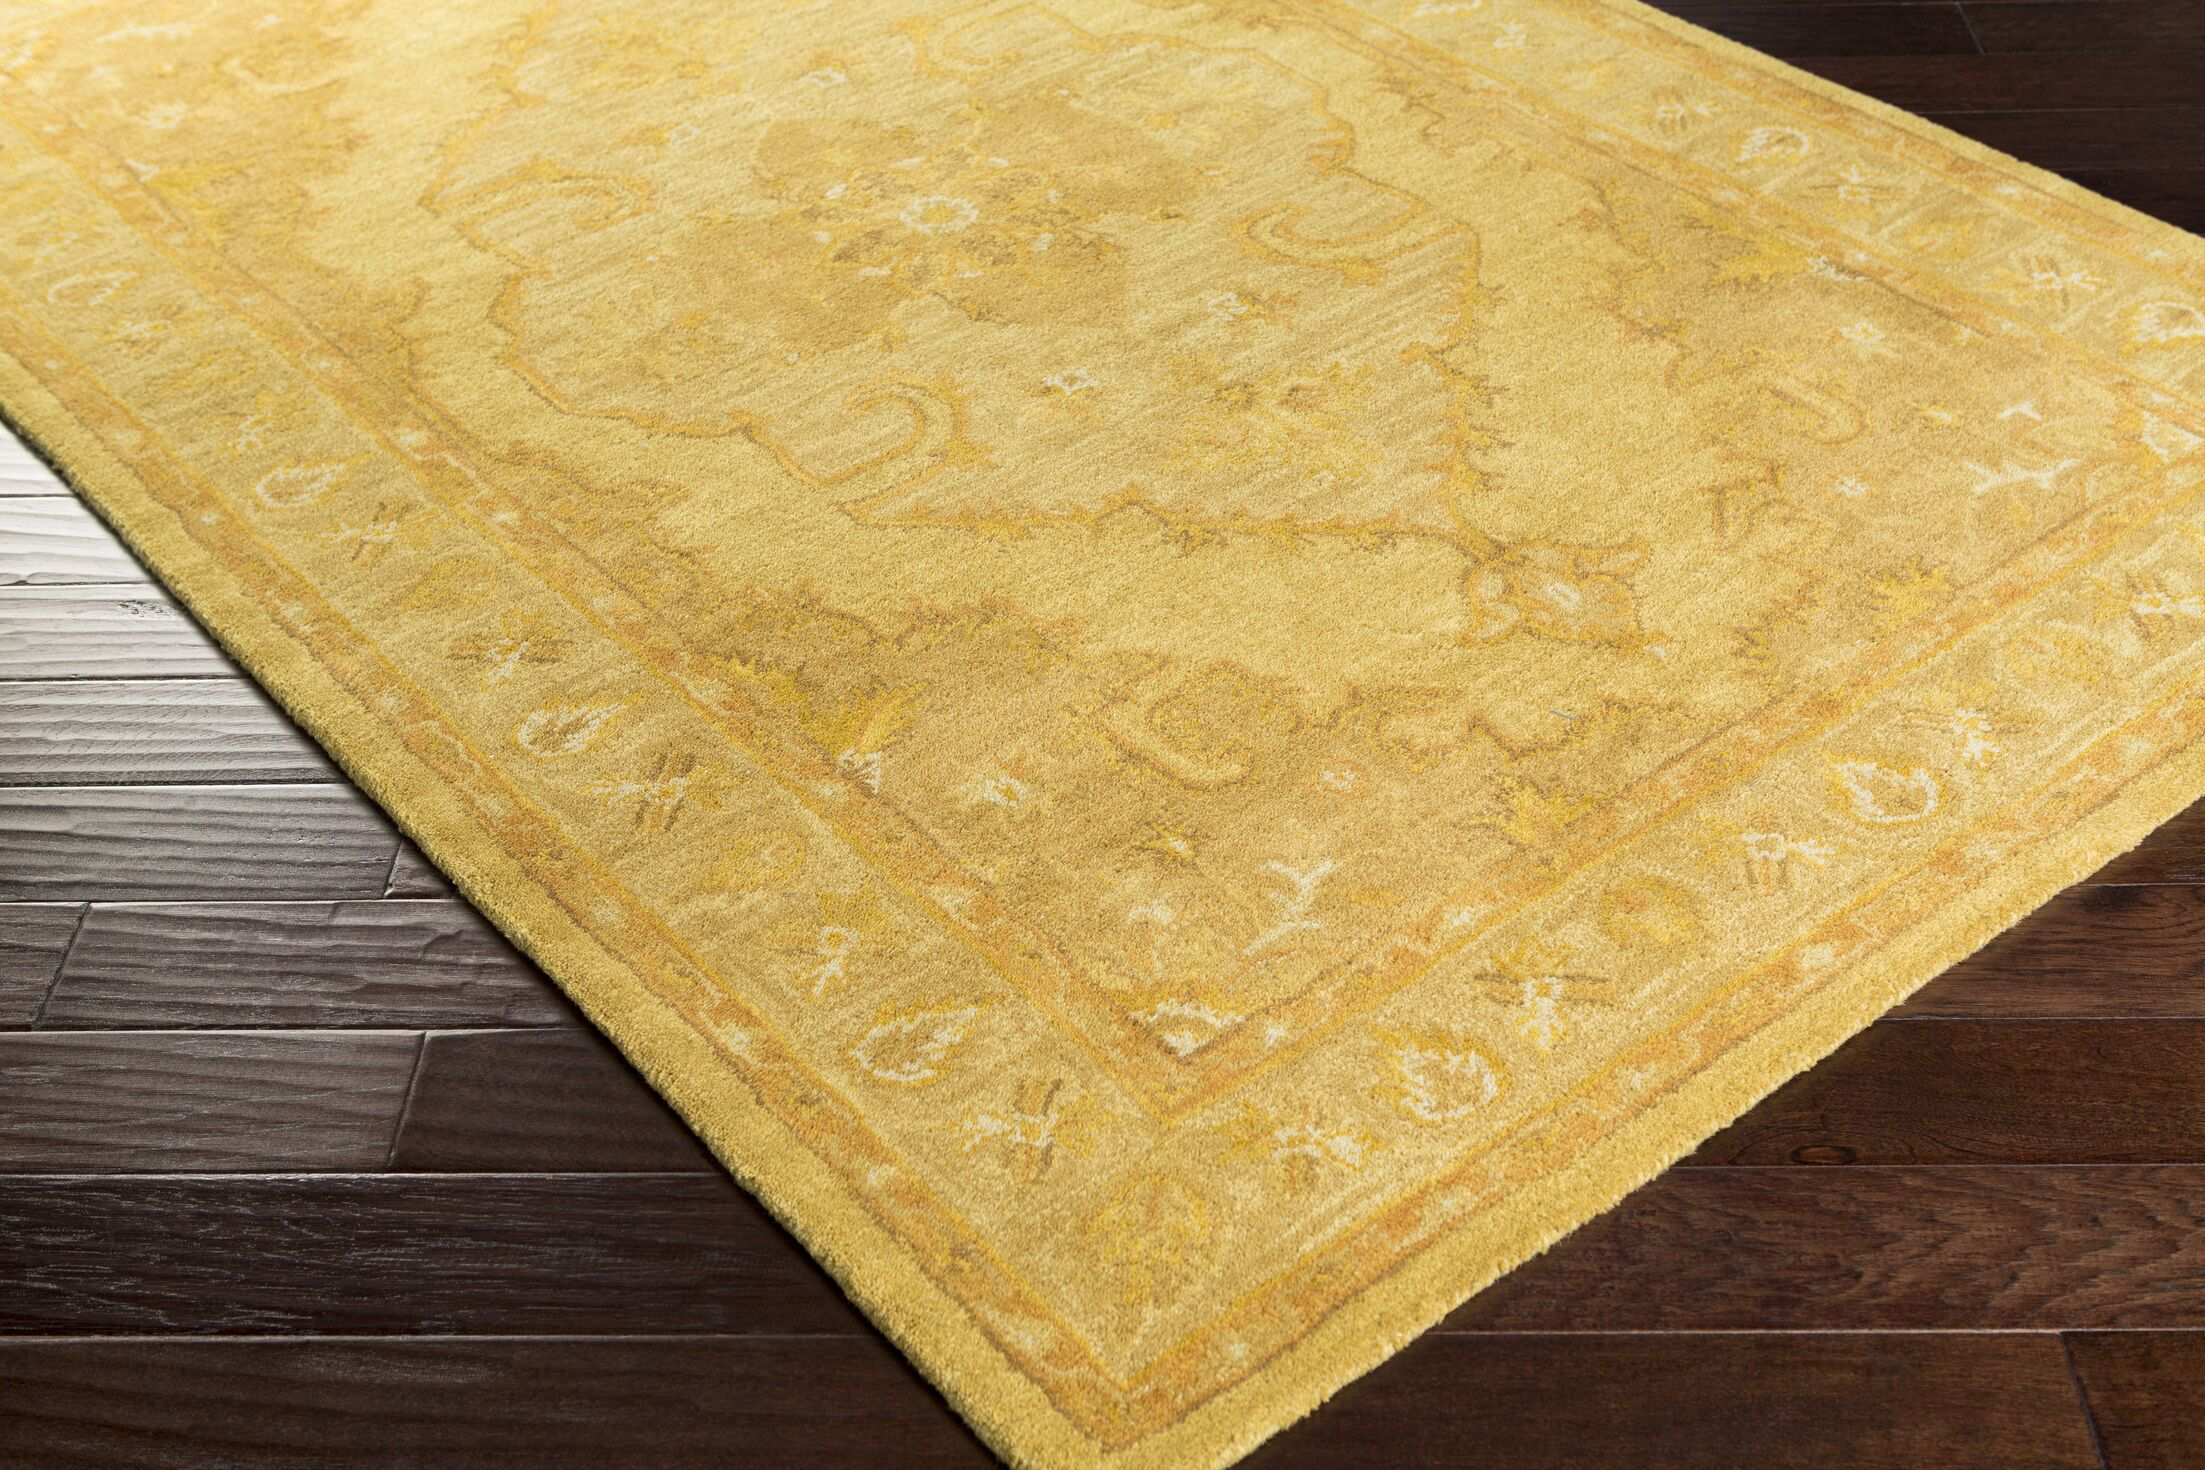 Eaddy Hand-Tufted Sunflower/Gold Area Rug Rug Size: Rectangle 9' x 13'